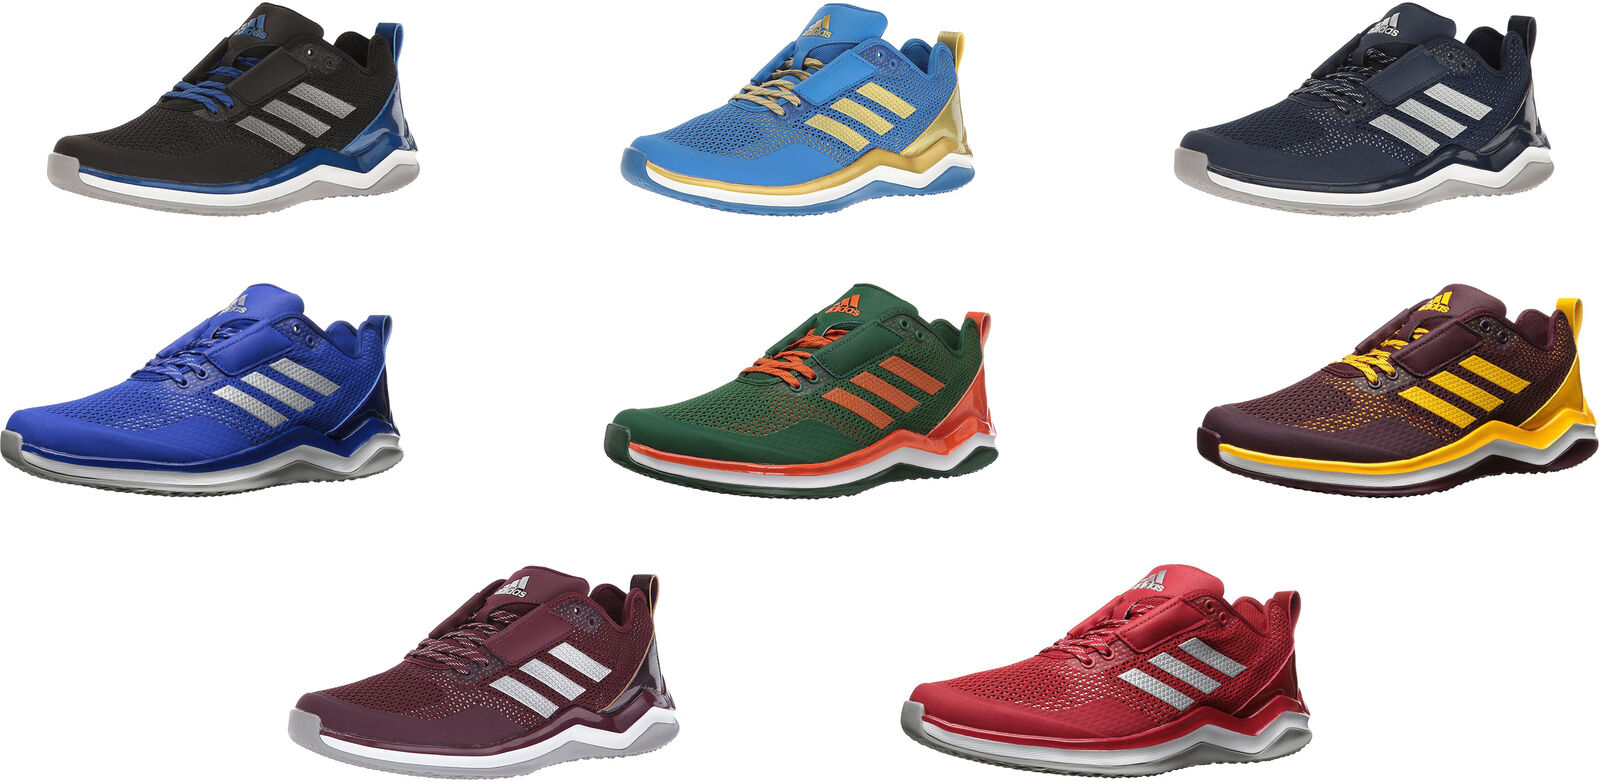 Adidas Men's Speed Trainer 3 Baseball shoes, 8 colors